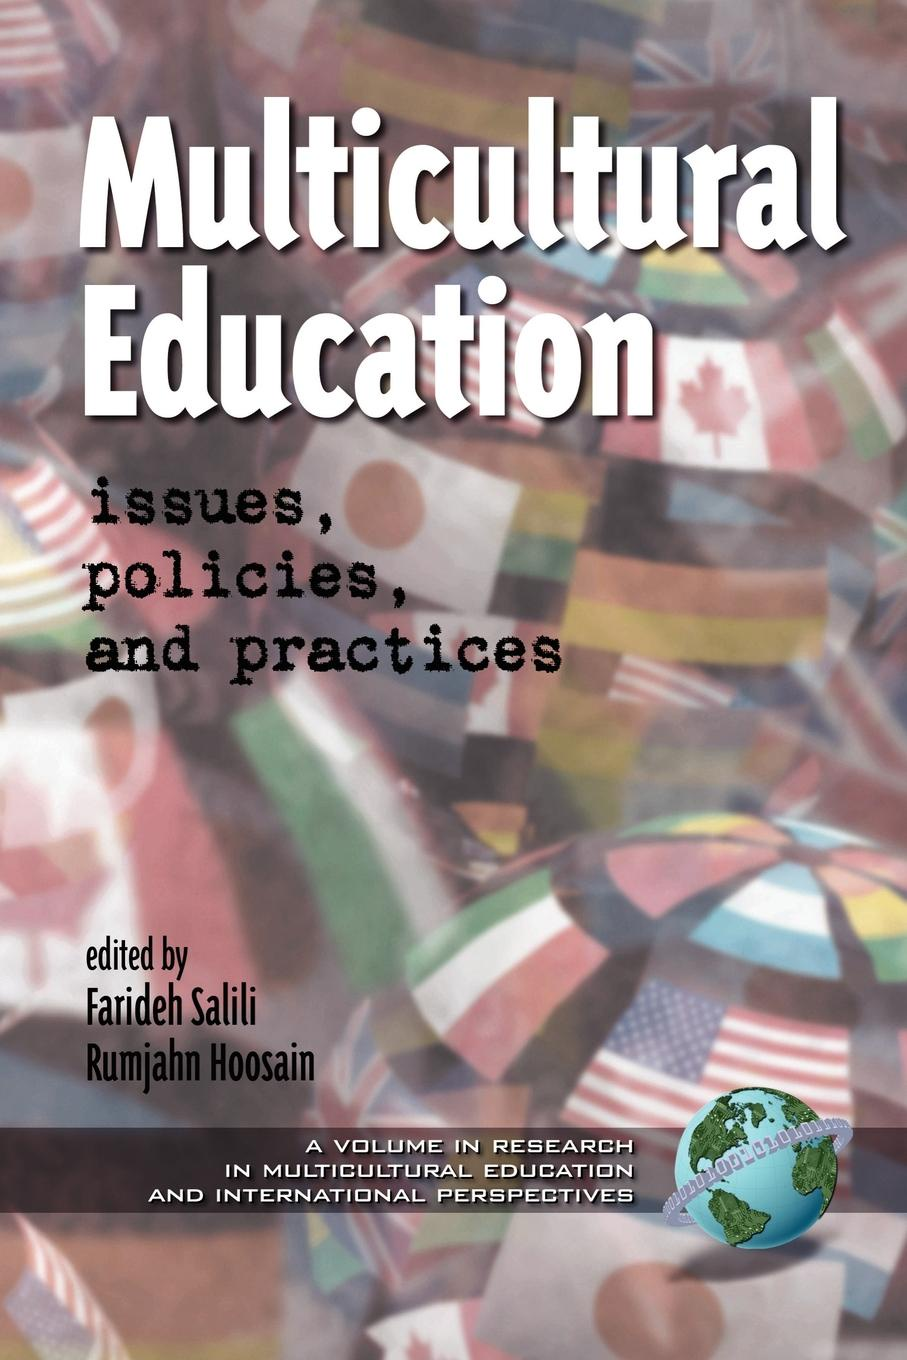 Multicultural Education. Issues, Policies, and Practices (PB) advancing democracy through education u s influence abroad and domestic practices pb